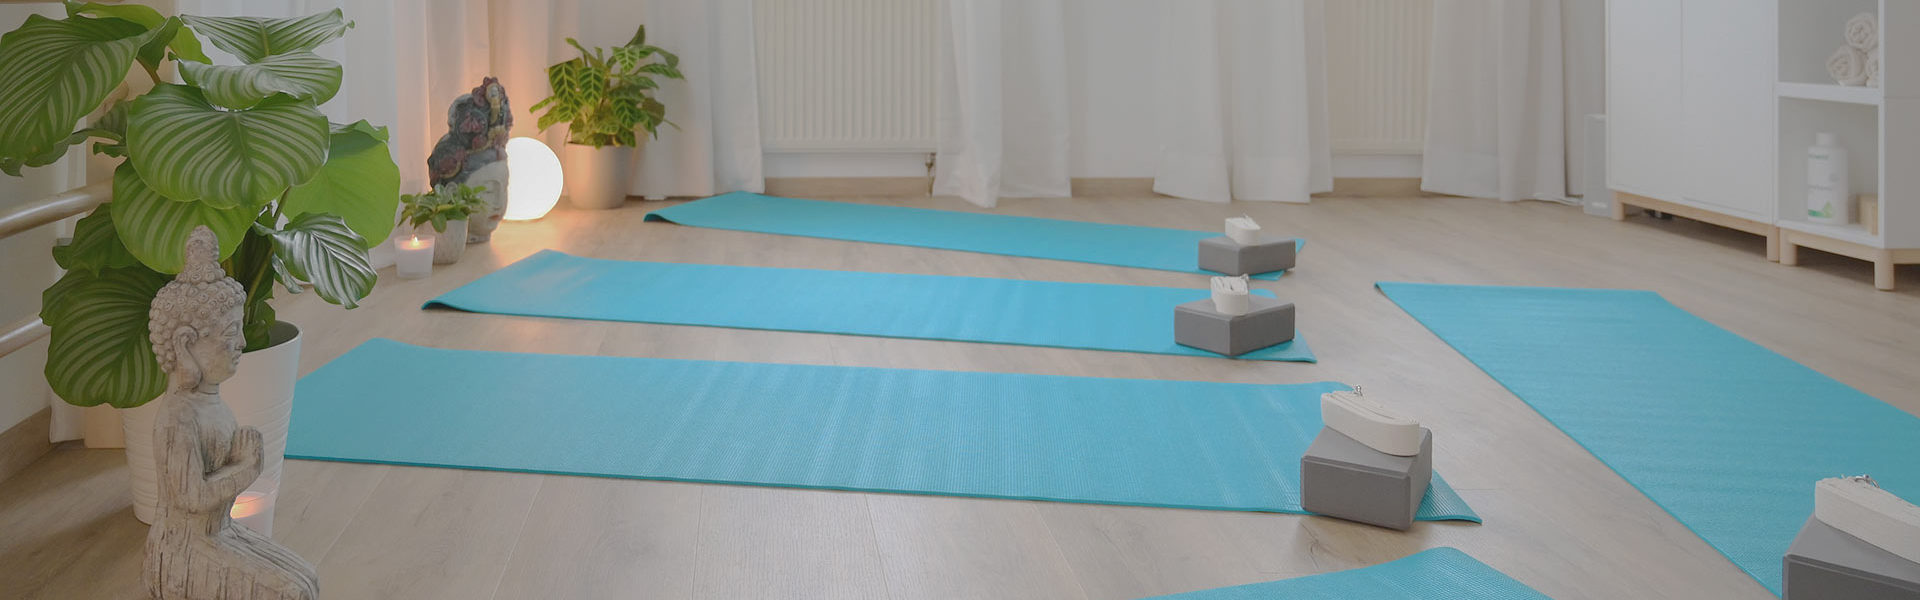 trend-physiotherapie-praxis-muenchen-10